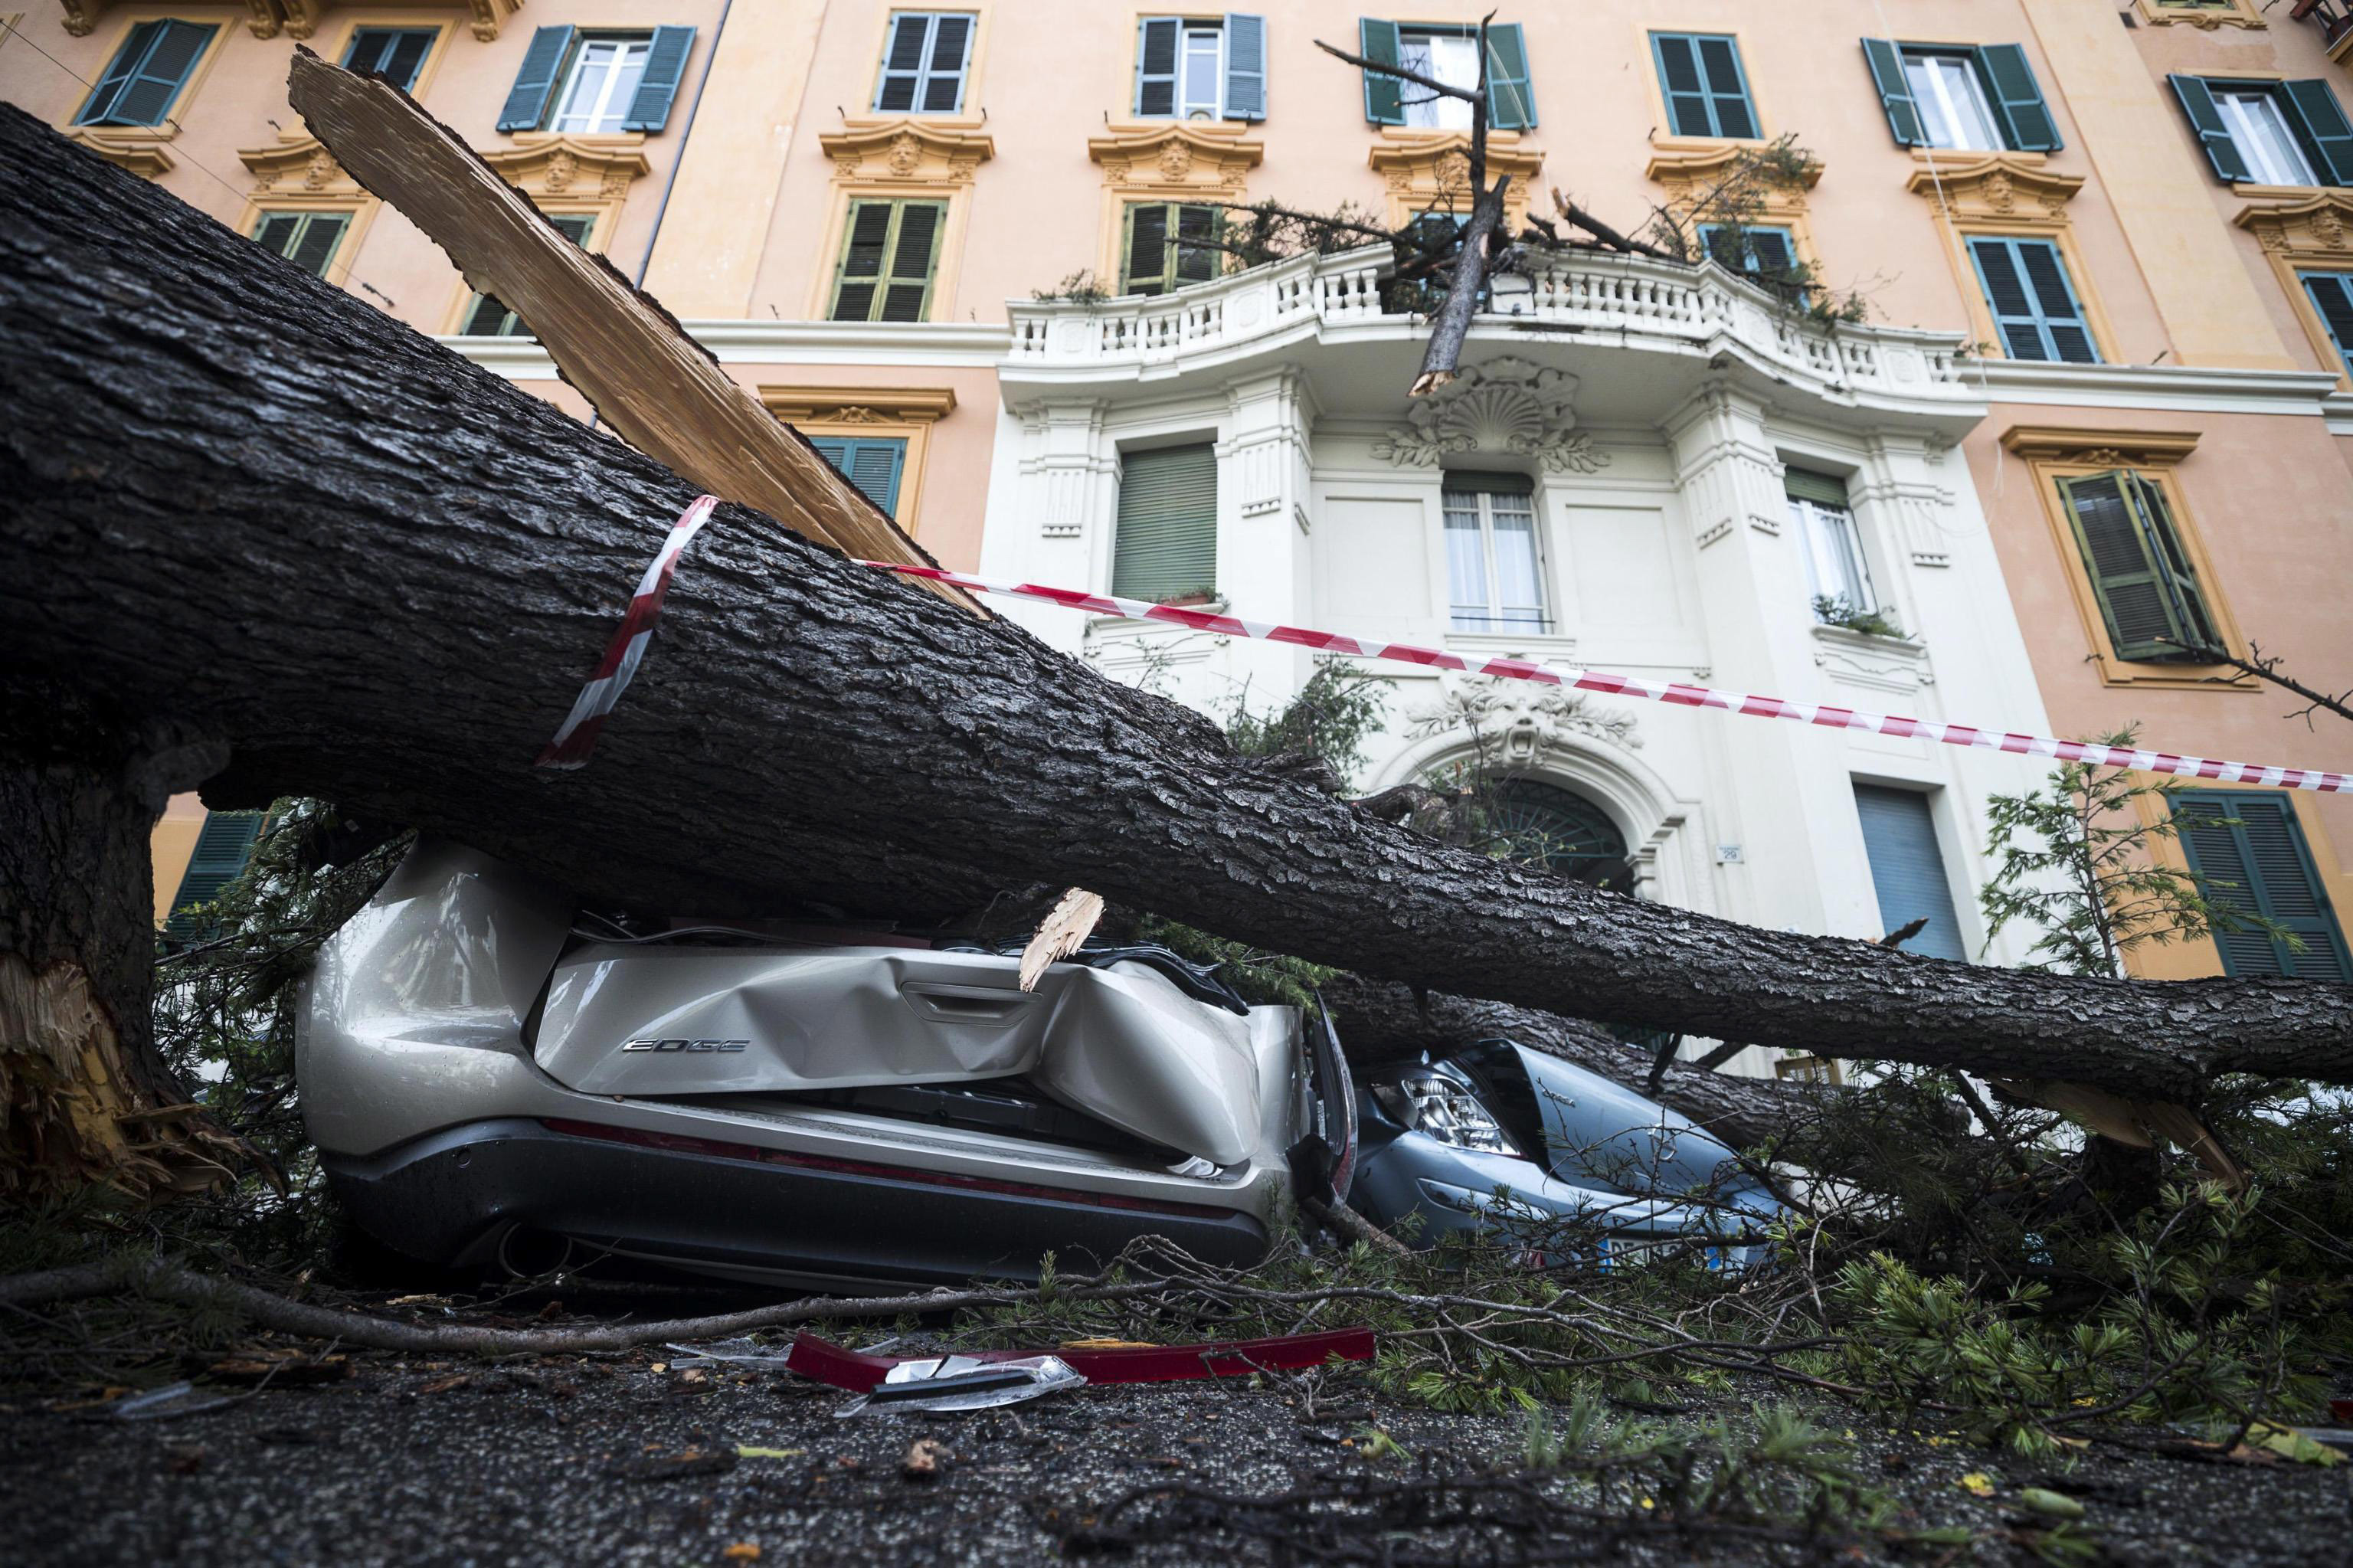 A car is crushed under a fallen tree and a balcony is partially destroyed by its branches after it was torn down by heavy winds, in Rome, Monday, Oct. 29, 2018. The national Civil Protection Agency has issued red and orange alerts -- meaning possible